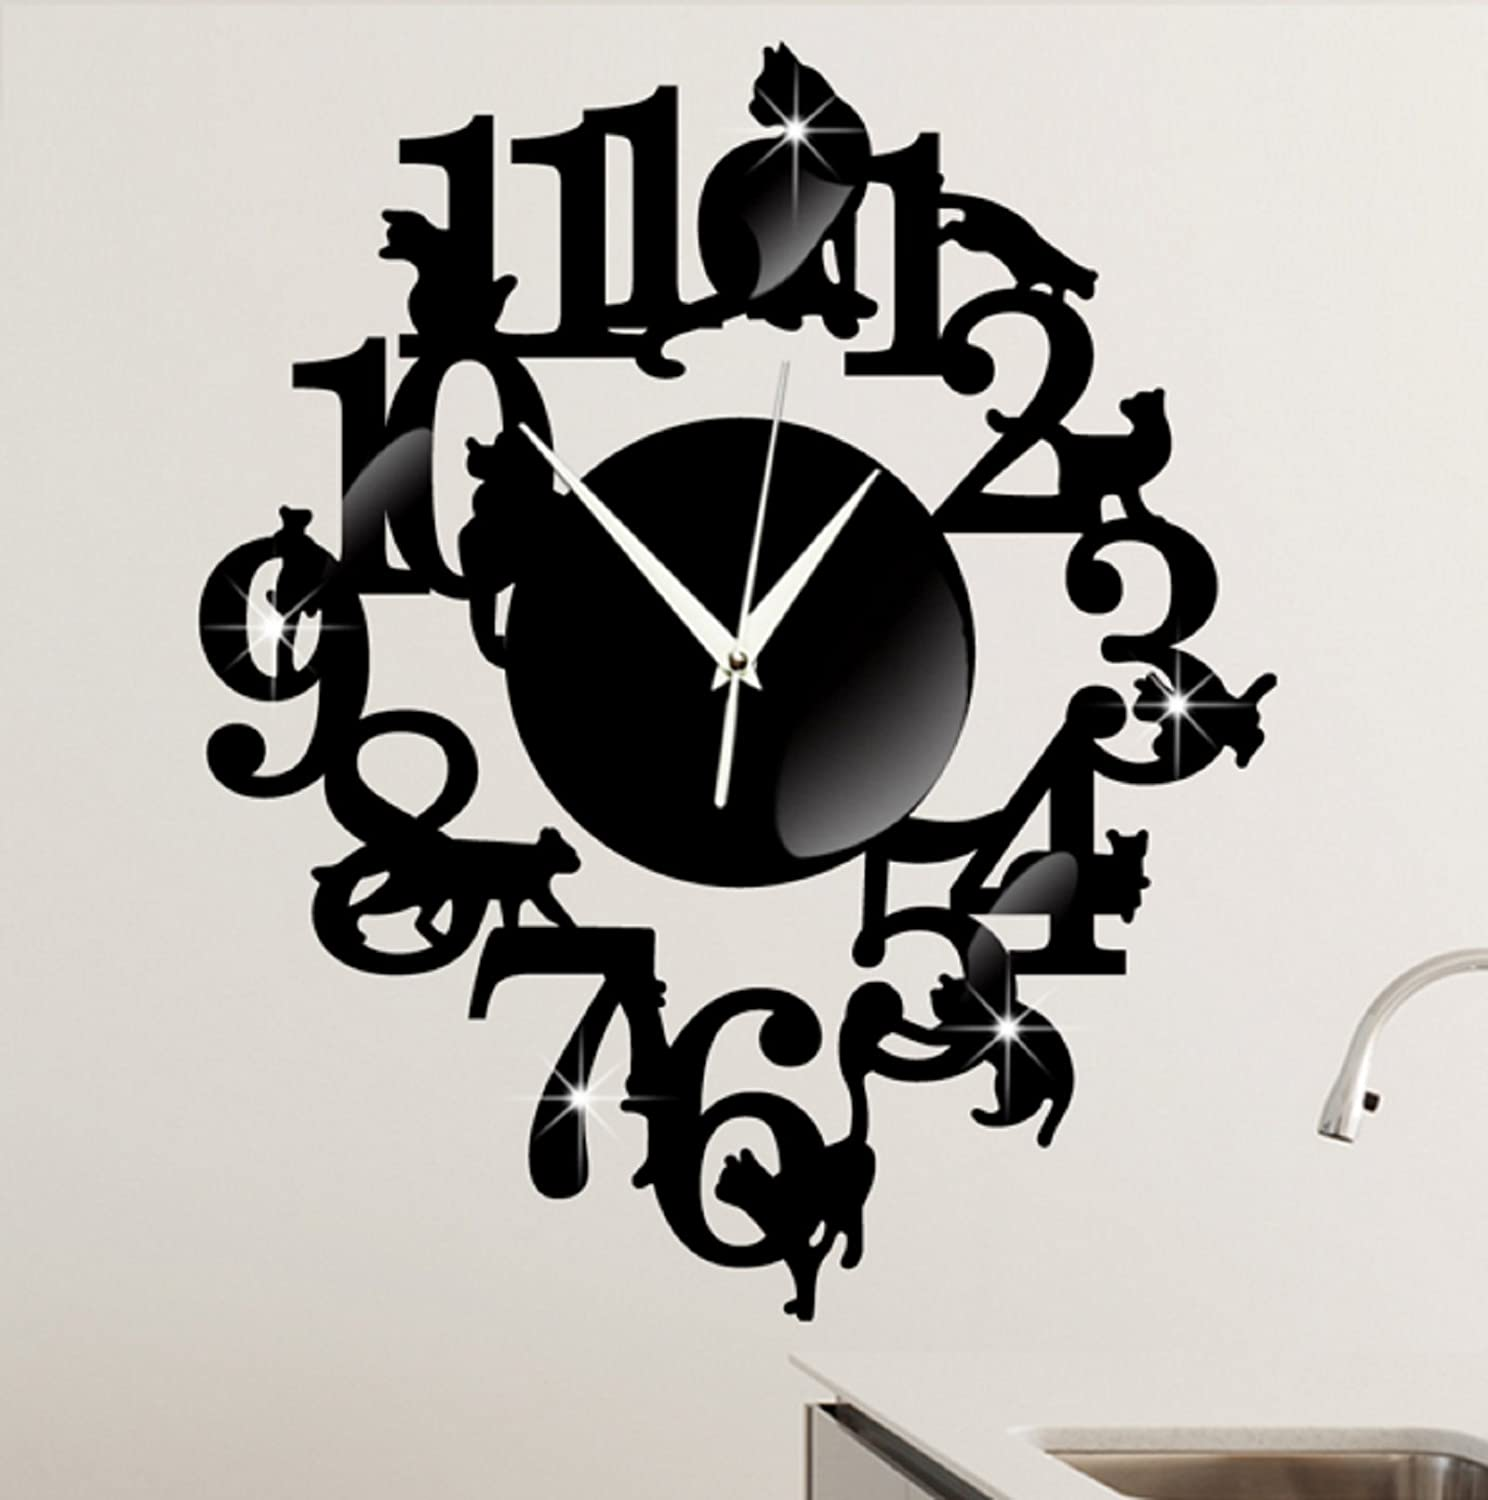 Amazon.com: (Black Color) NEW home decor wandklok creative wall watch reloj Acrylic Cats Lovery large 3d vintage wall clocks modern design murale reloj ...